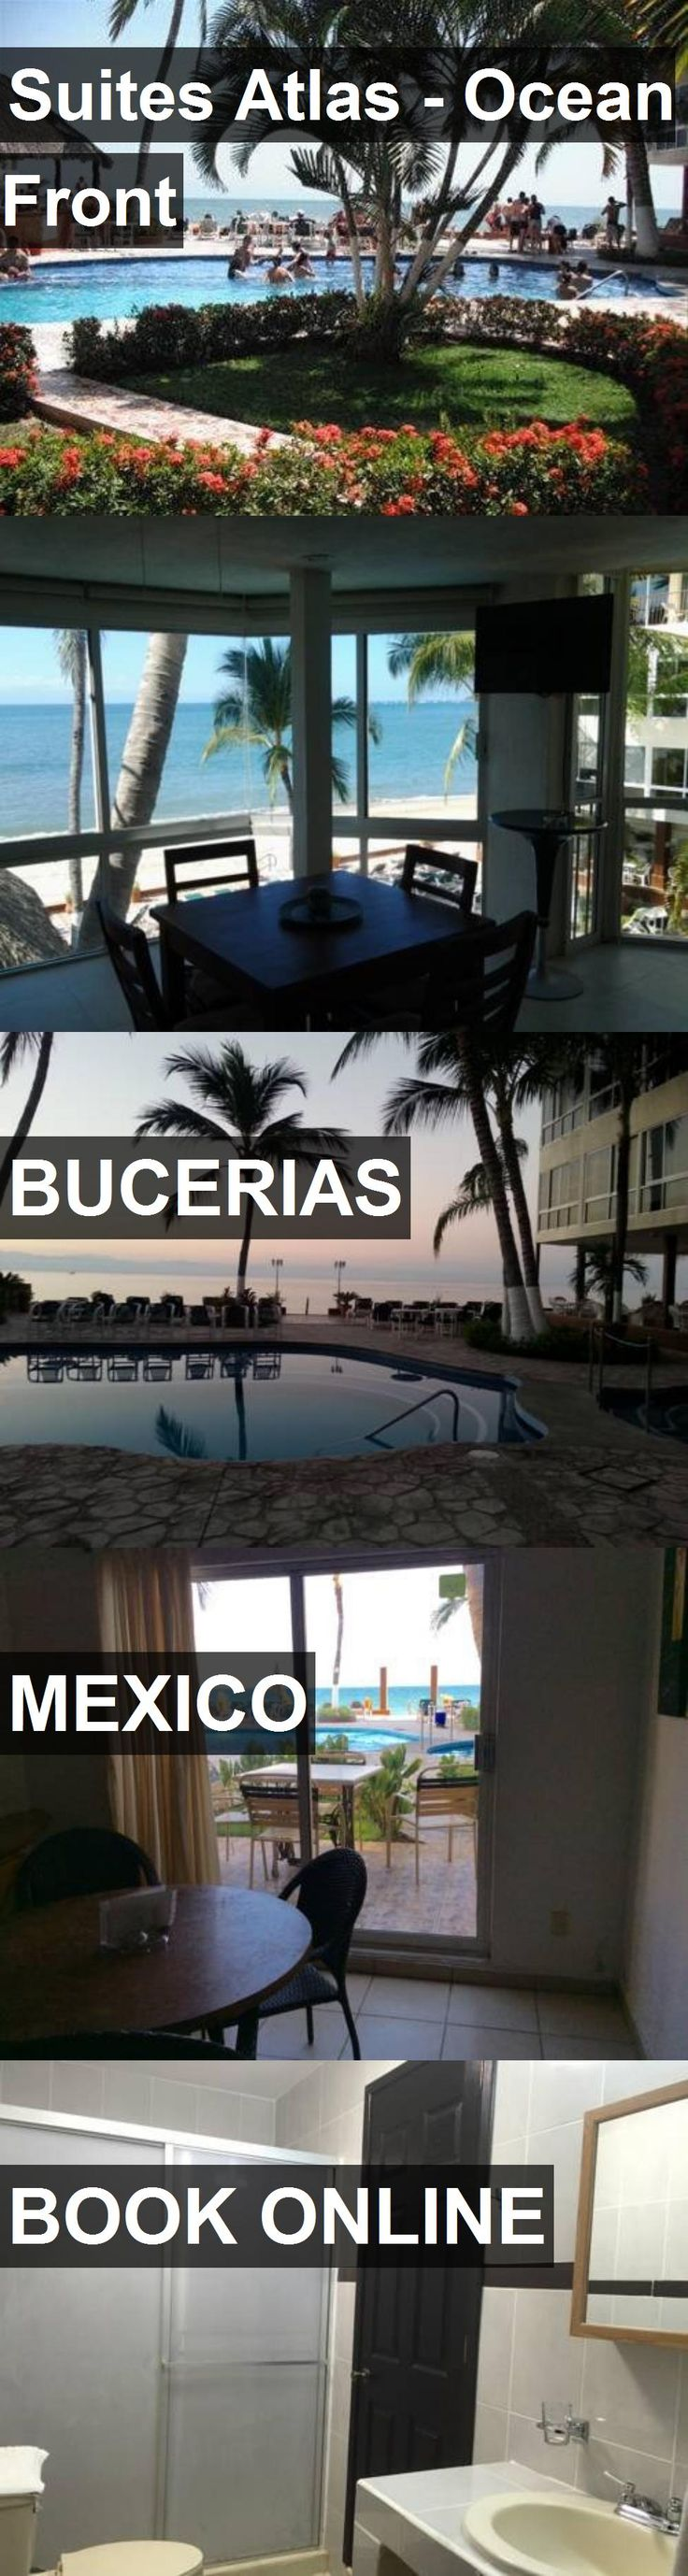 Hotel Suites Atlas - Ocean Front in Bucerias, Mexico. For more information, photos, reviews and best prices please follow the link. #Mexico #Bucerias #travel #vacation #hotel